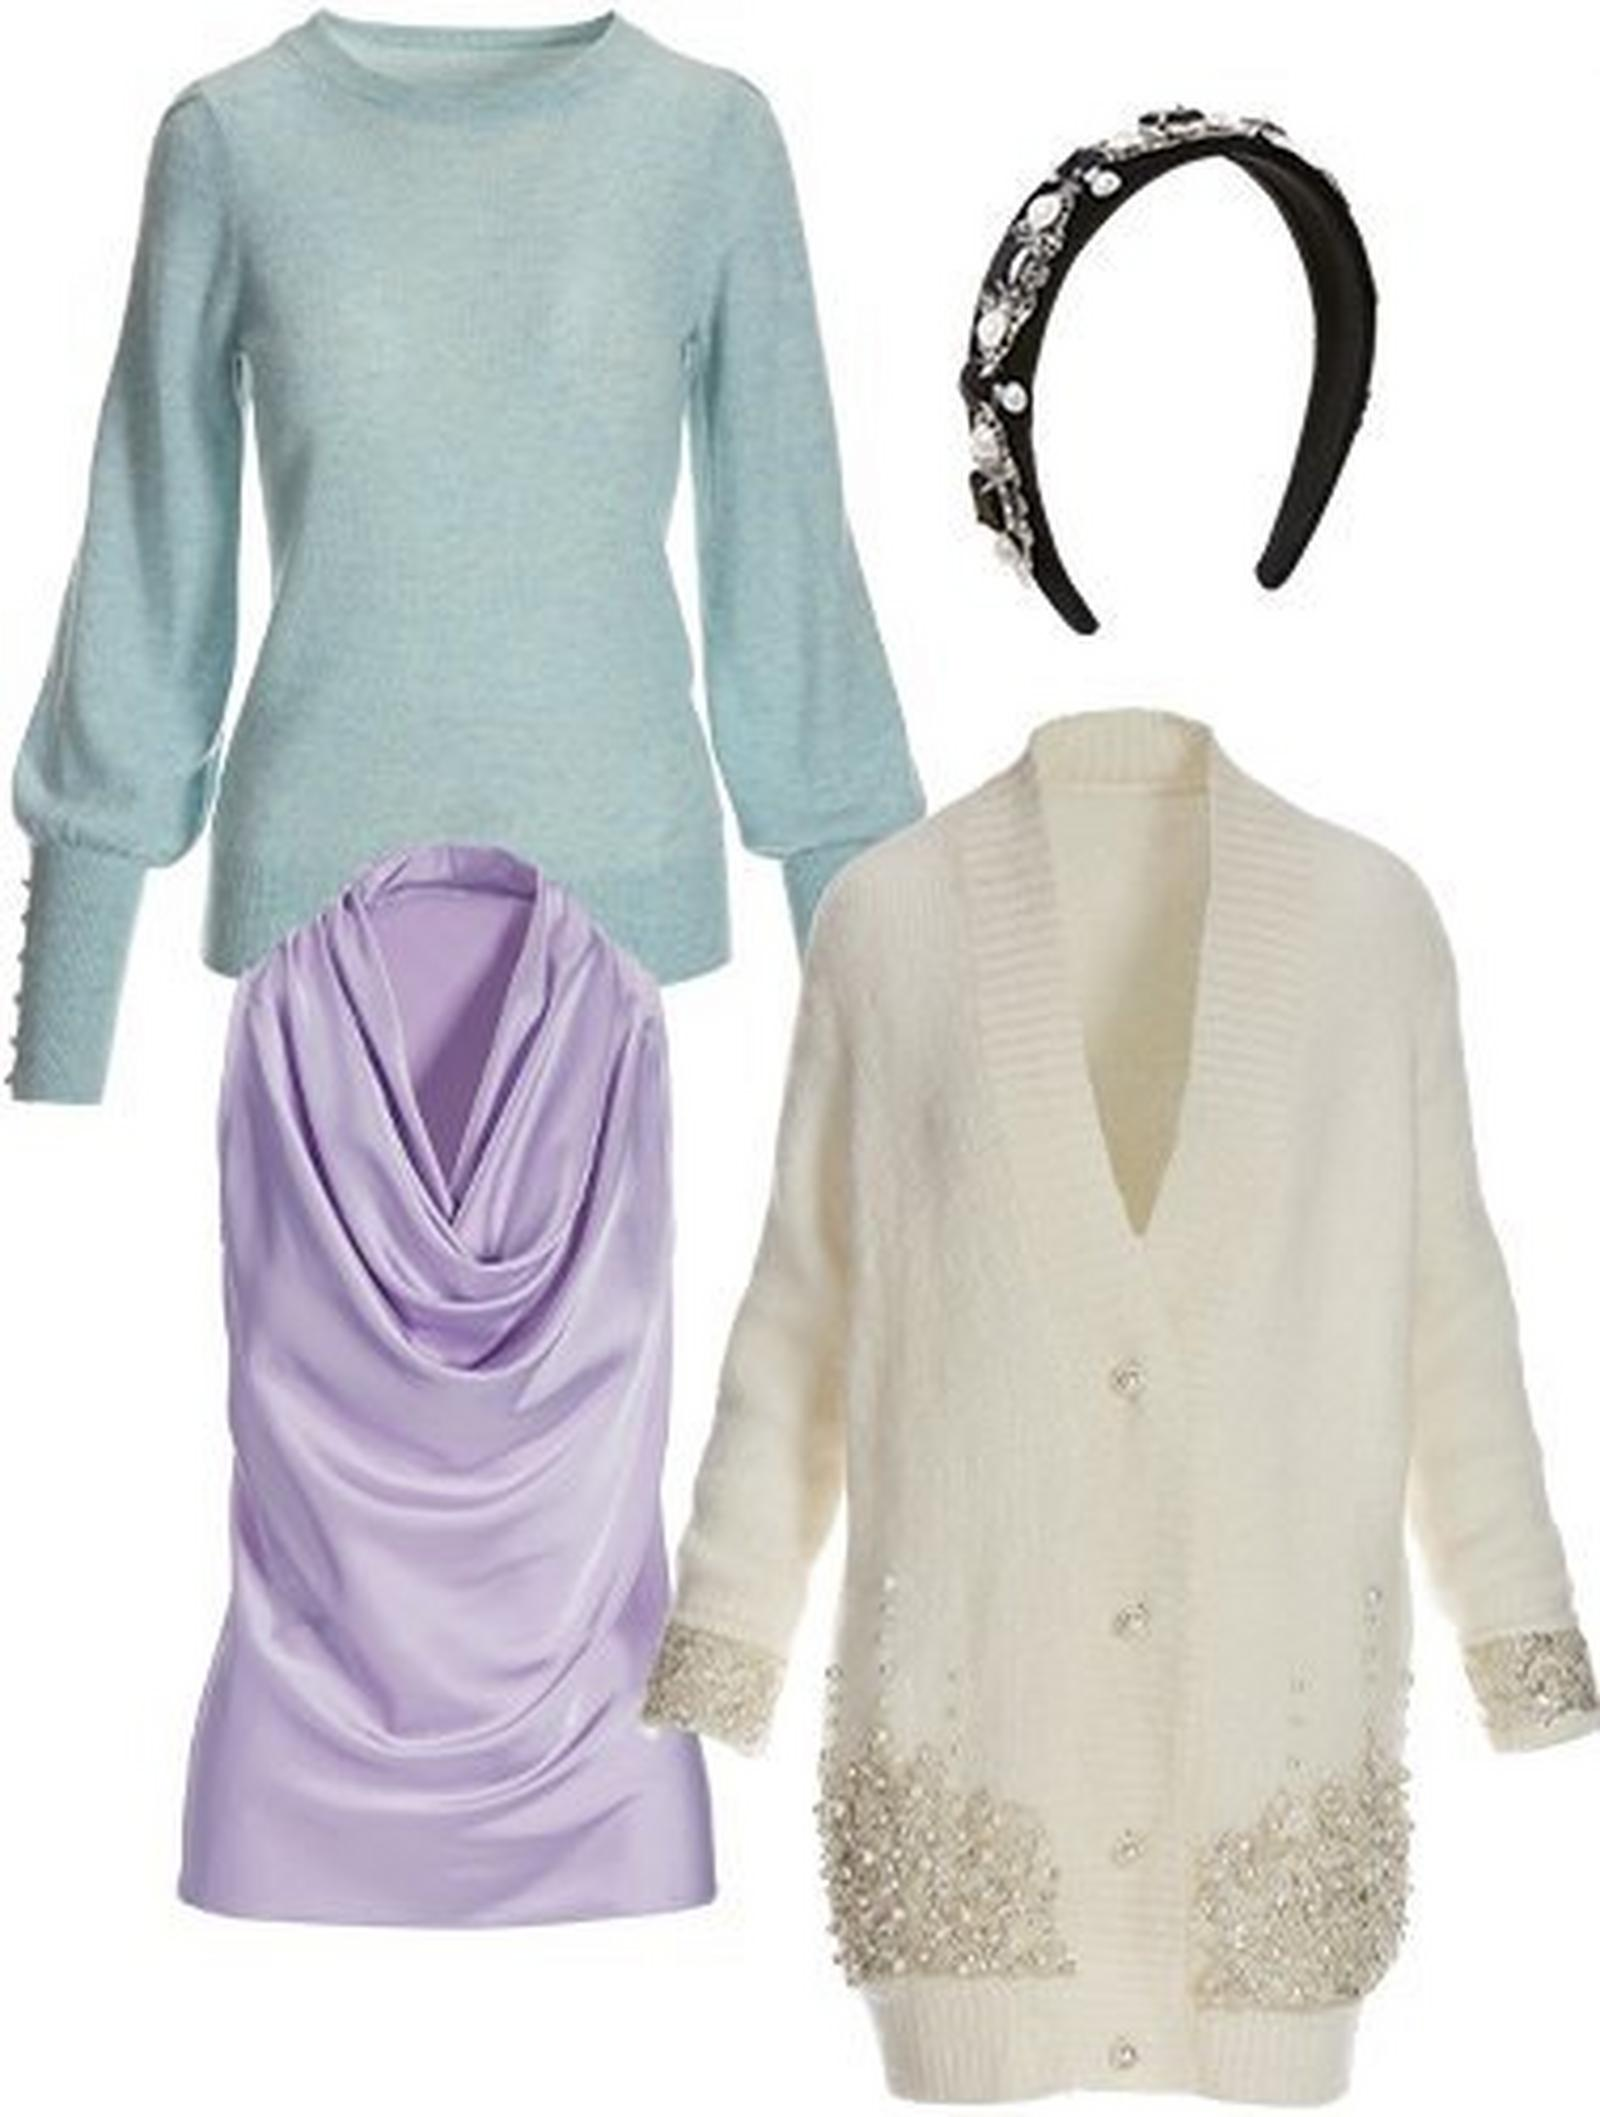 light blue button-cuff puff-sleeve cashmere sweater, lavender cowl neck sleeveless charmeuse top, white rhinestone embellished cardigan sweater, and a black pearl embellished headband.